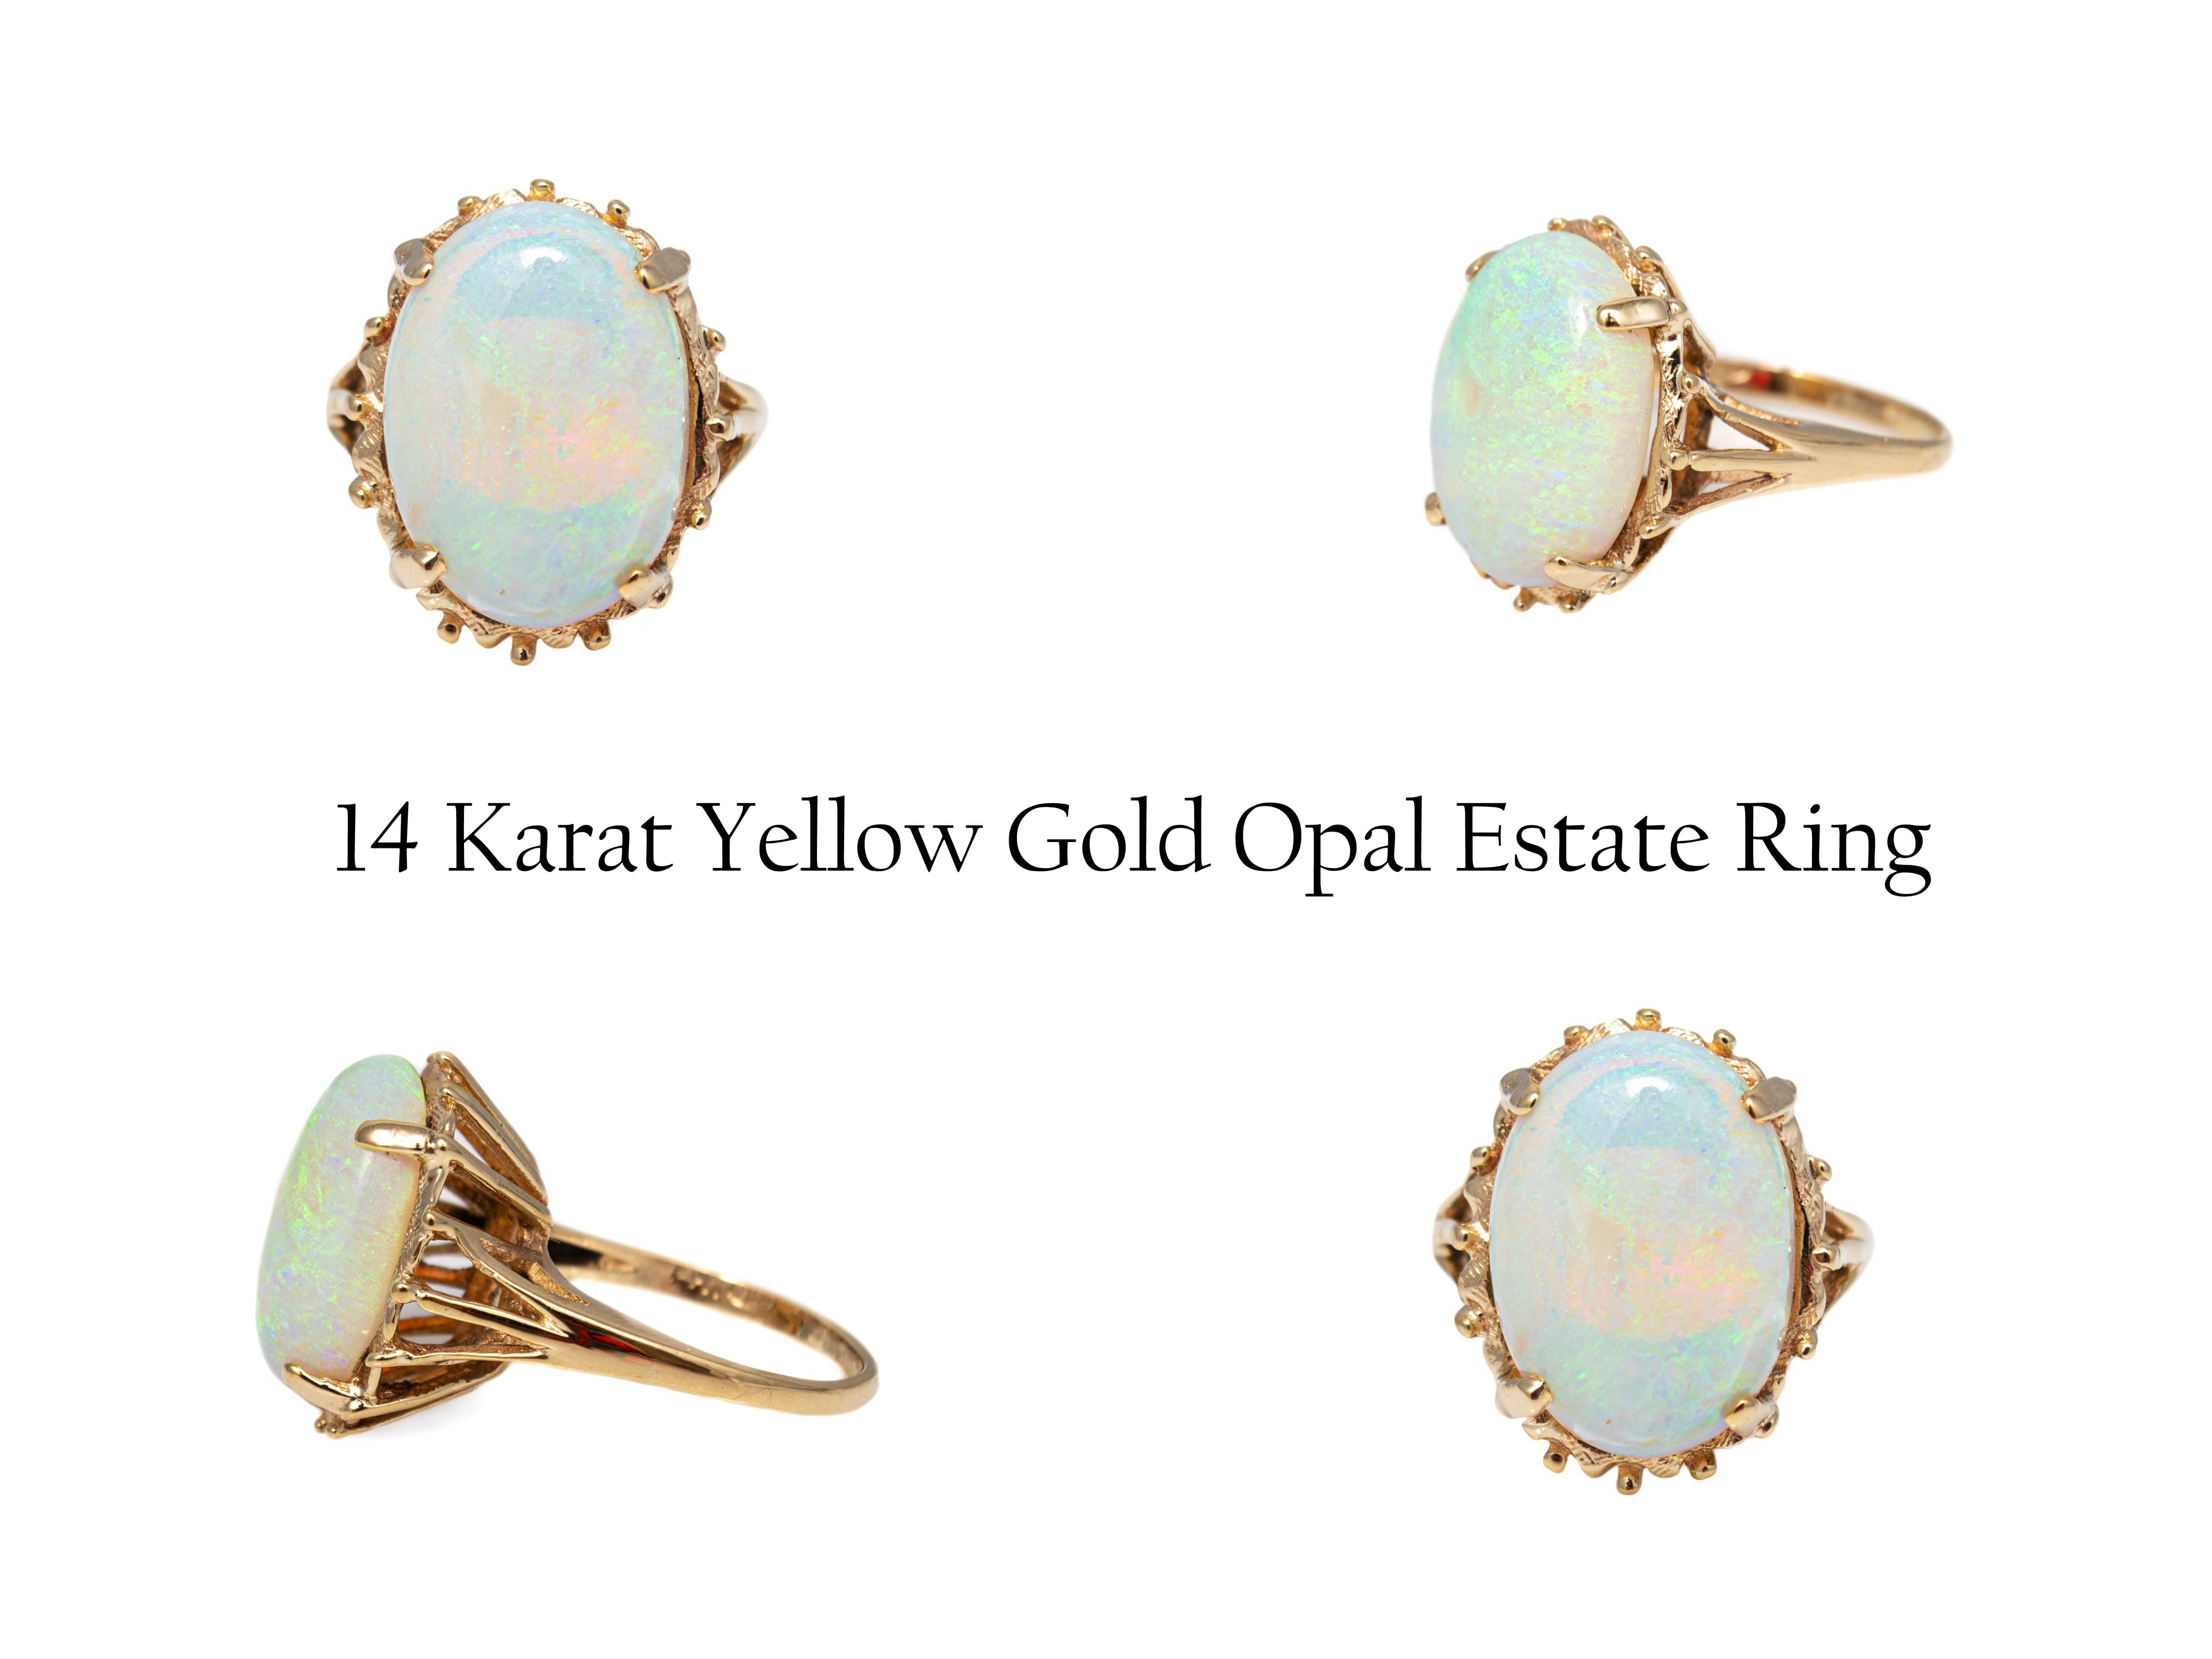 14 Karat Yellow Gold Opal Estate Ring